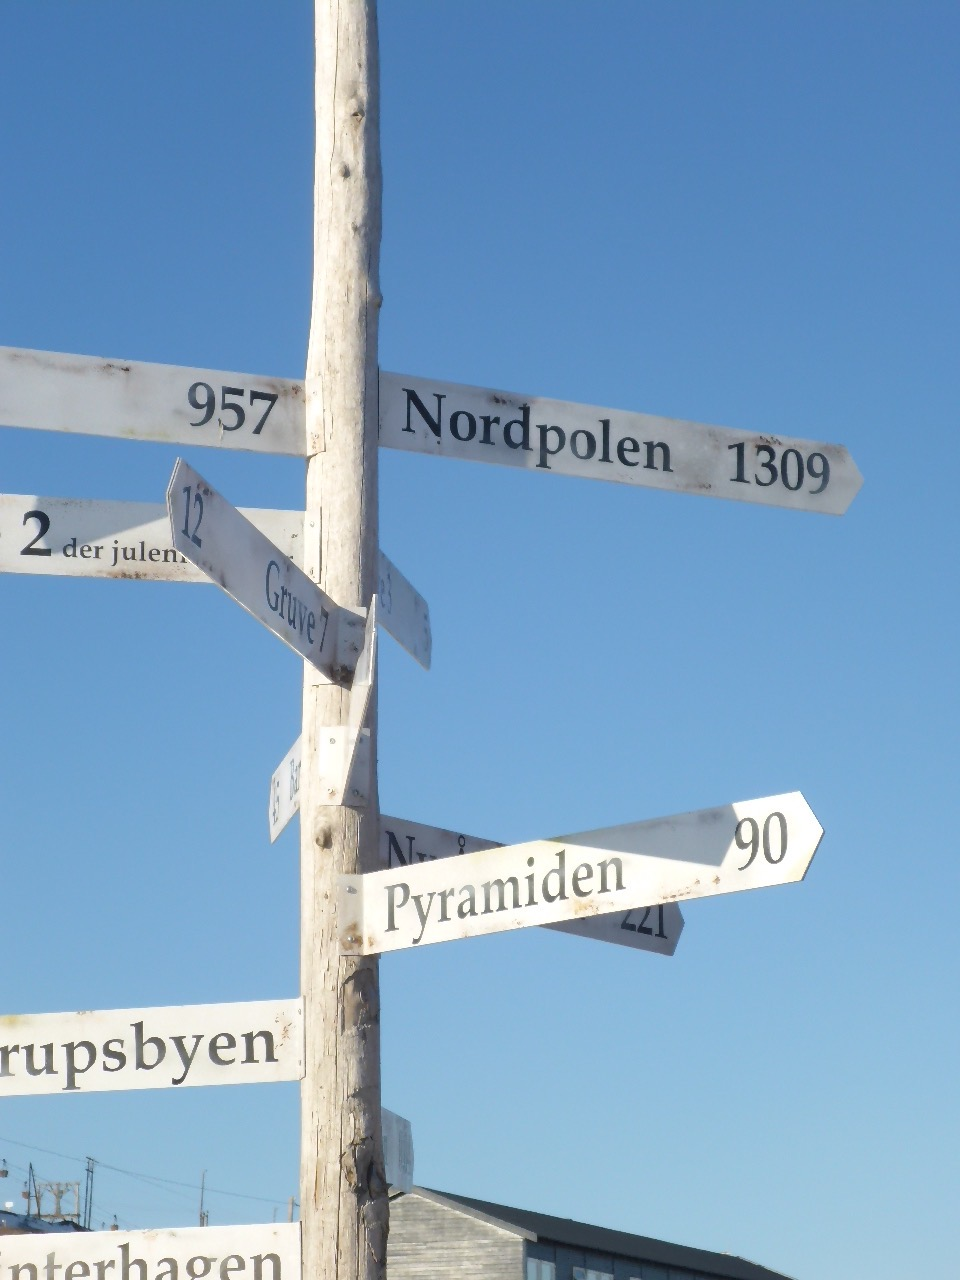 The North Pole is conveniently signposted outside MaryAnn's Polar Rigg!